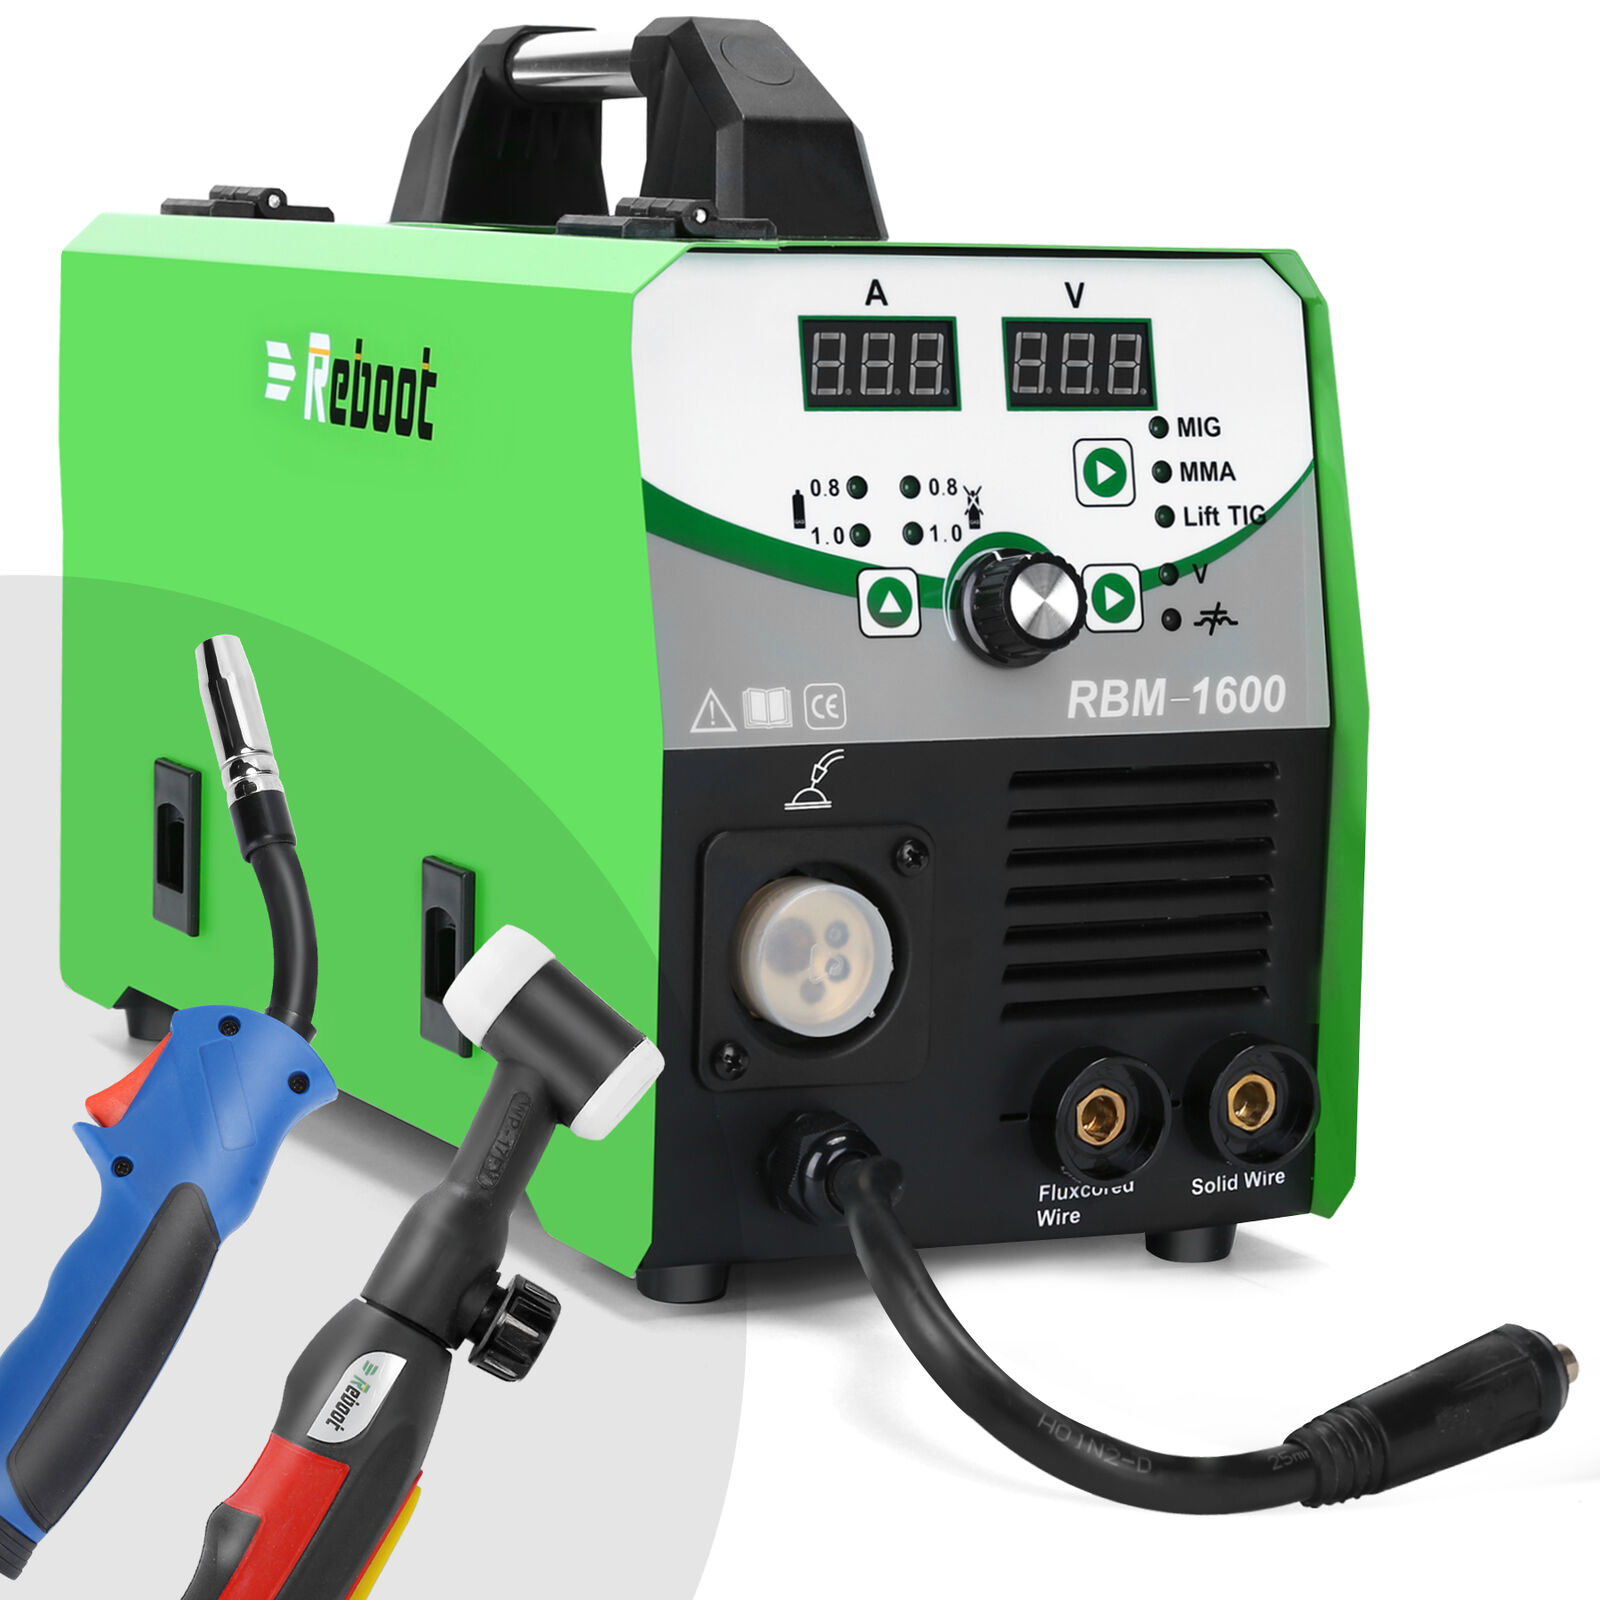 MIG TIG Welder 160A IGBT Inverter ARC STICK GAS GASLESS LIFT TIG 5 IN 1 Welding. Buy it now for 339.99